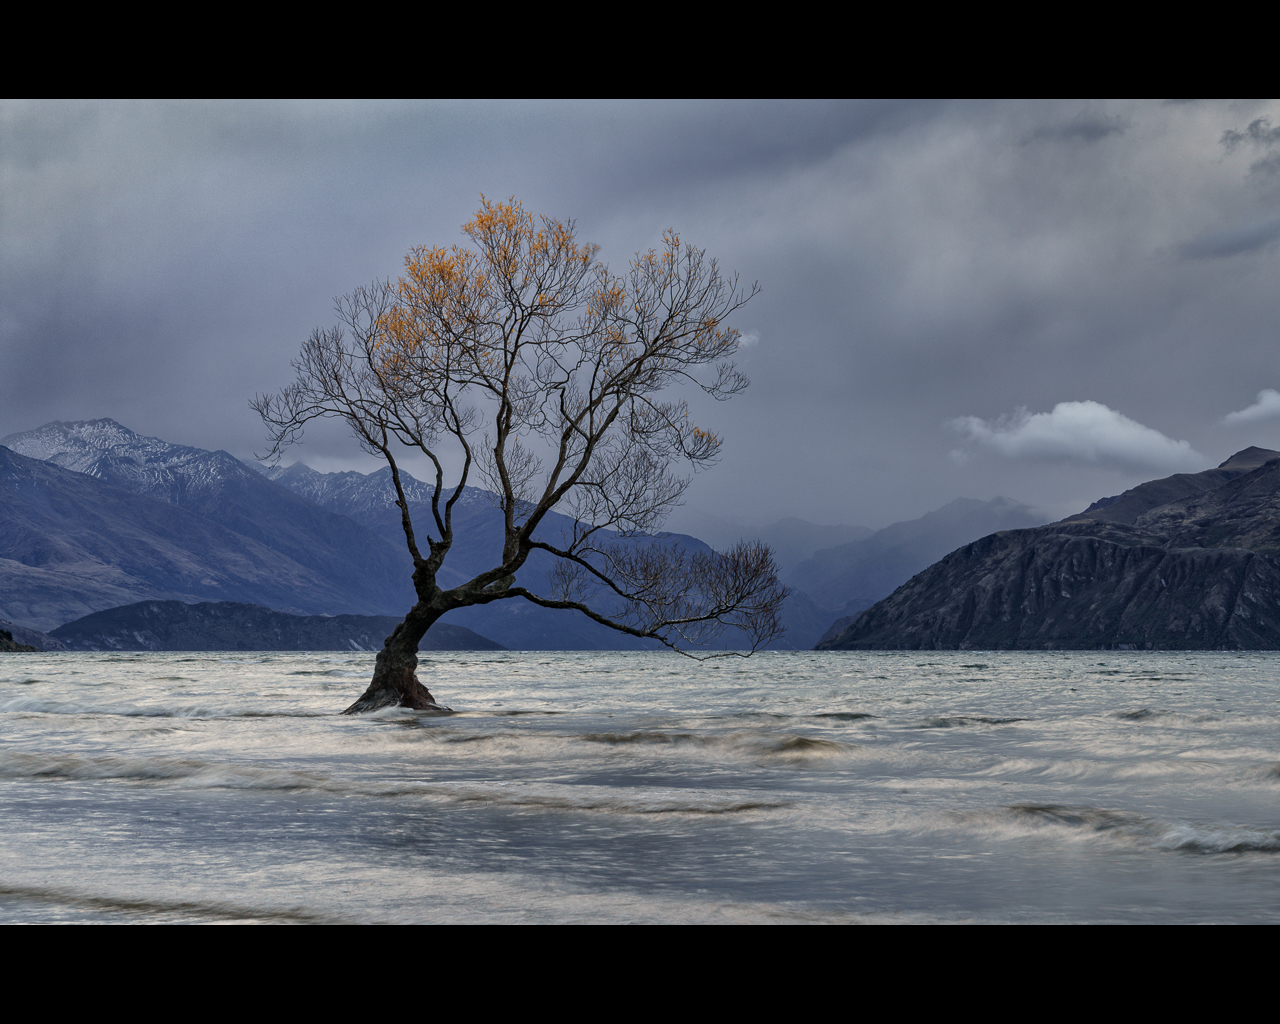 A MOMENT OF LIGHT AT THE LONE TREE OF WANAKA by Chris Newham